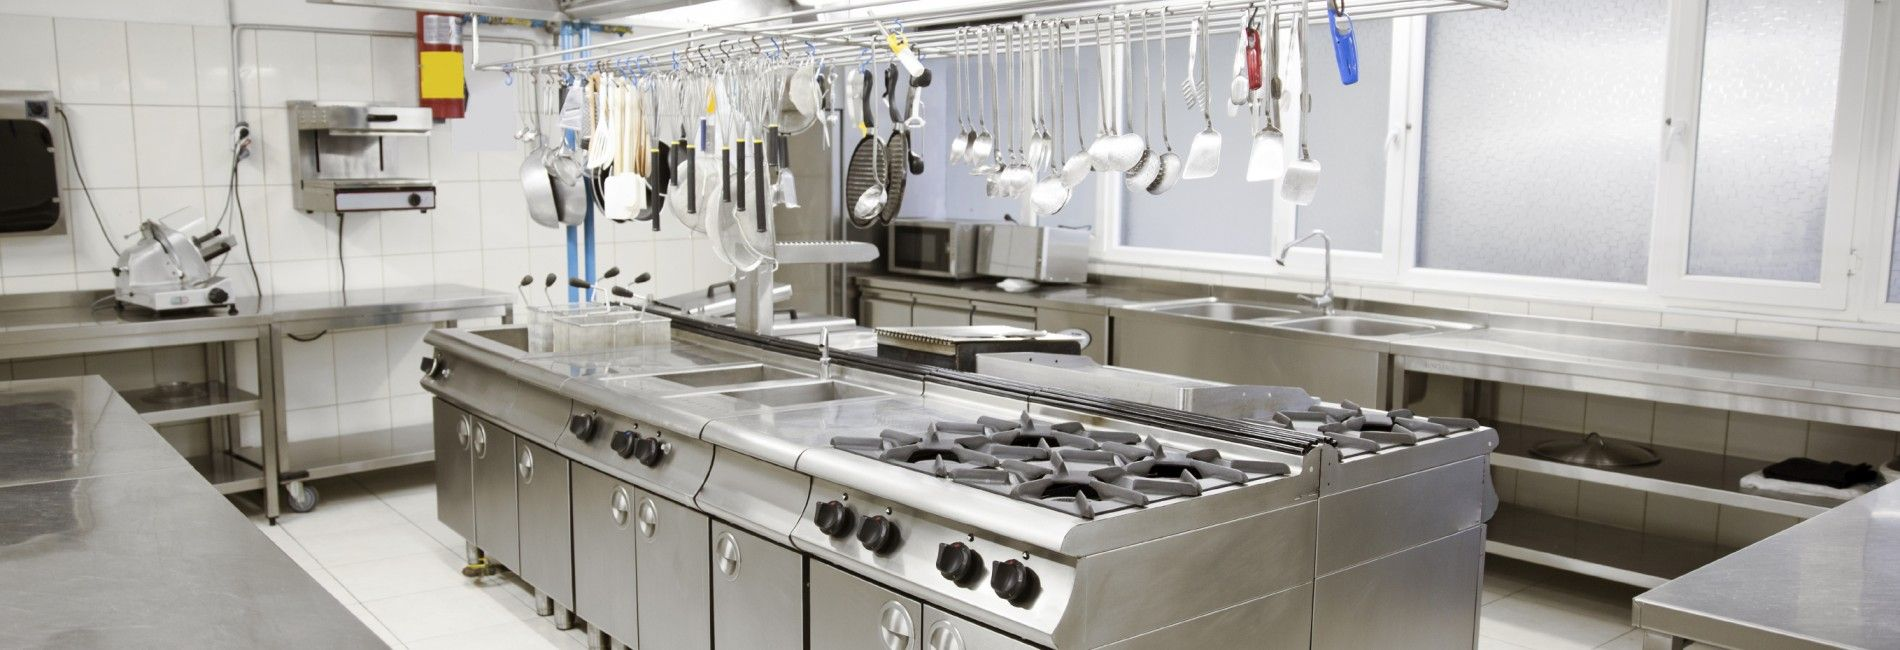 Equipments Commercial Kitchen Manufacturers And Suppliers